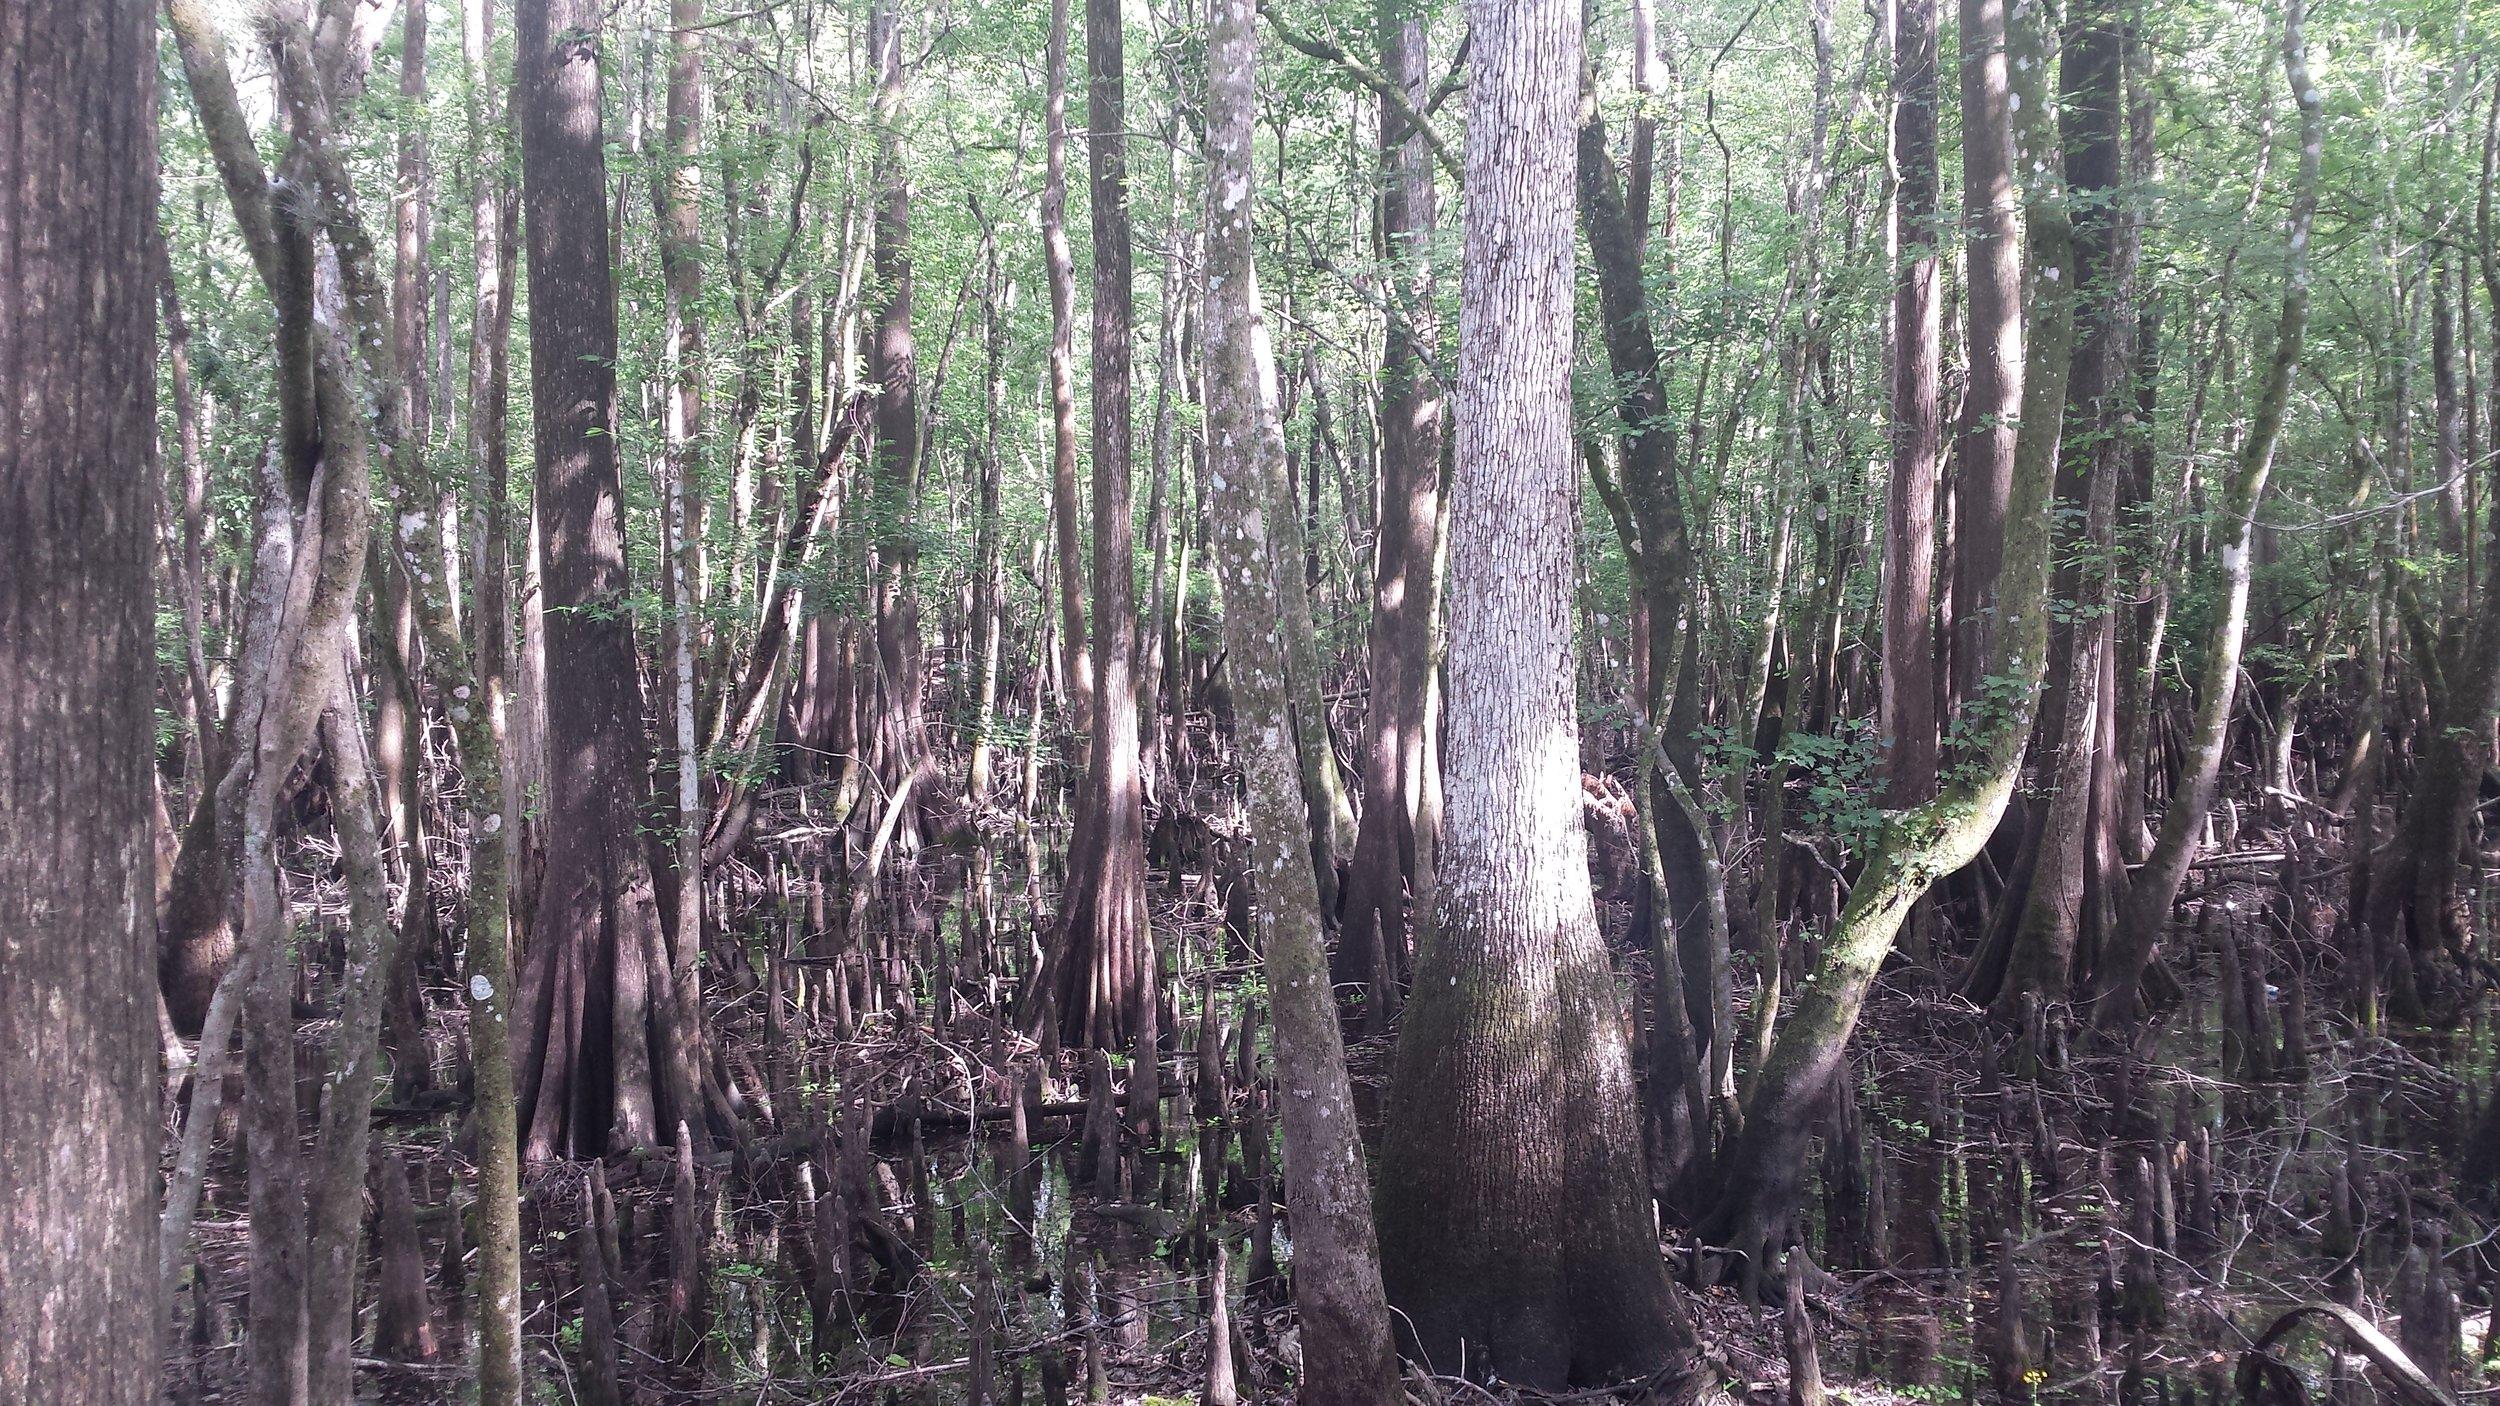 The light through the trees and sparkling on the water makes the swamp other-worldly.